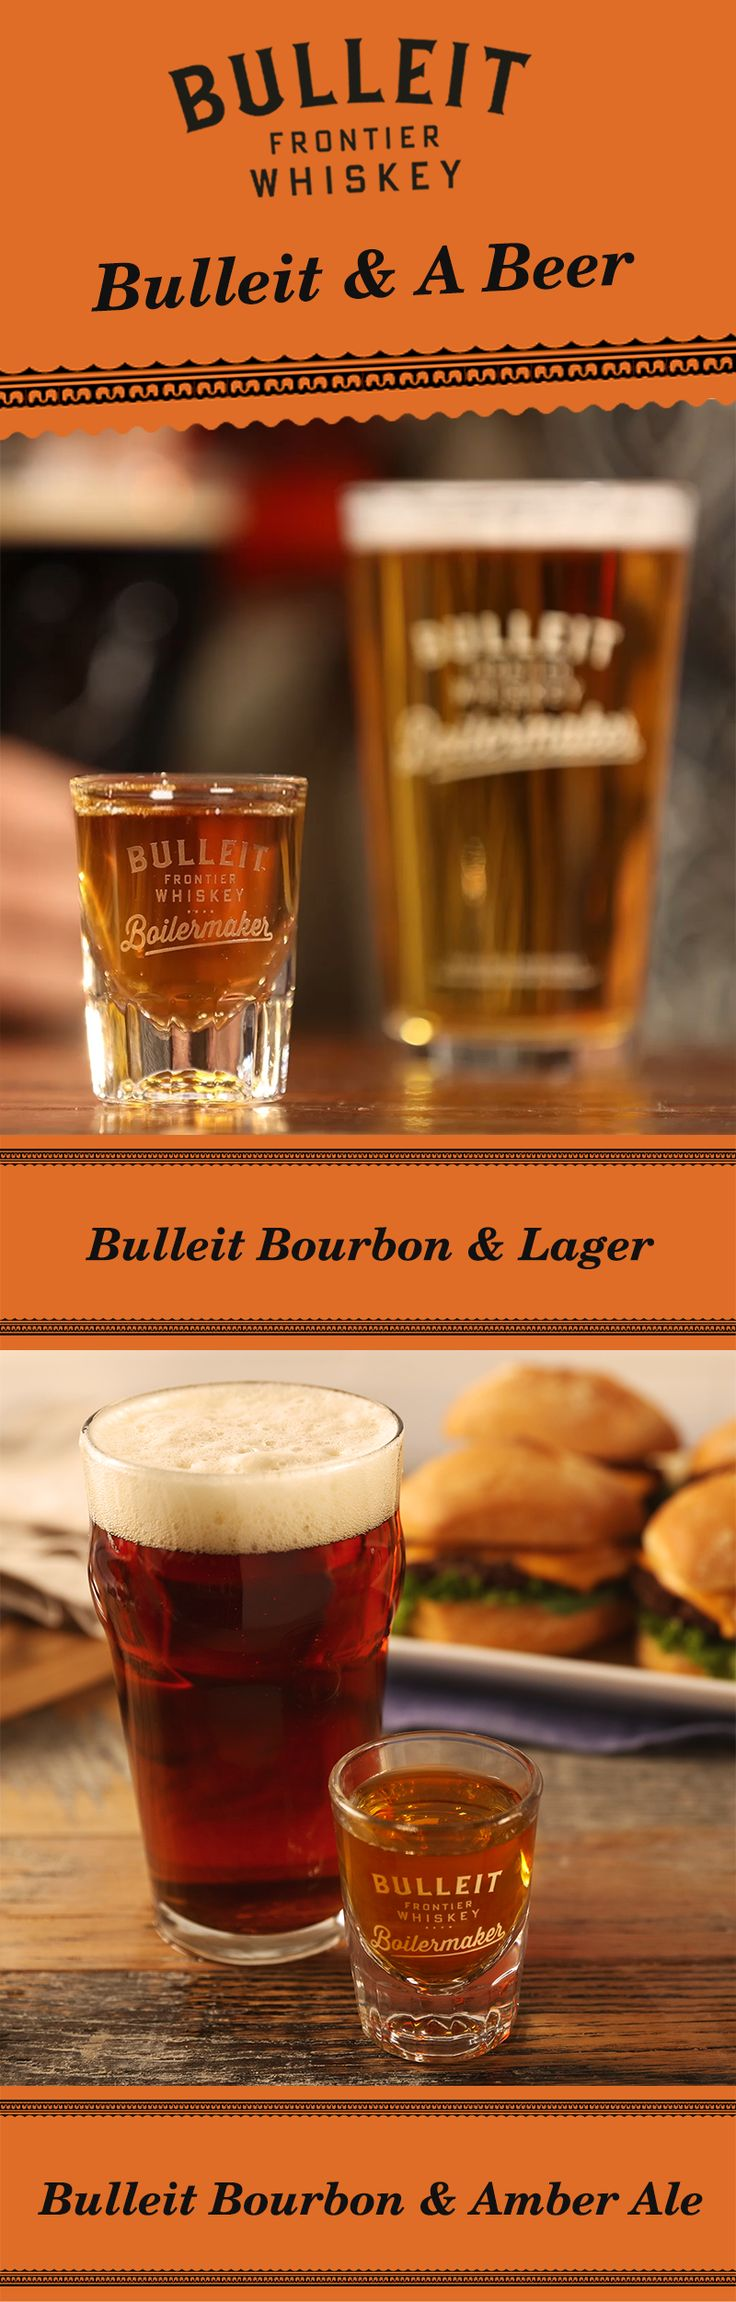 No matter if you're at home, the bar, or a football stadium—it takes two teams to play the game. So, make your drink Bulleit and a beer. The recipe is as simple as pairing a beer and a shot. Simply pour 1.3 oz Bulleit Bourbon and pair it with your favorite 12 oz beer—including a lager or amber ale. To best experience this two-drink serve, alternate between sipping Bulleit and slowly drinking your beer to discover unique flavor profiles.